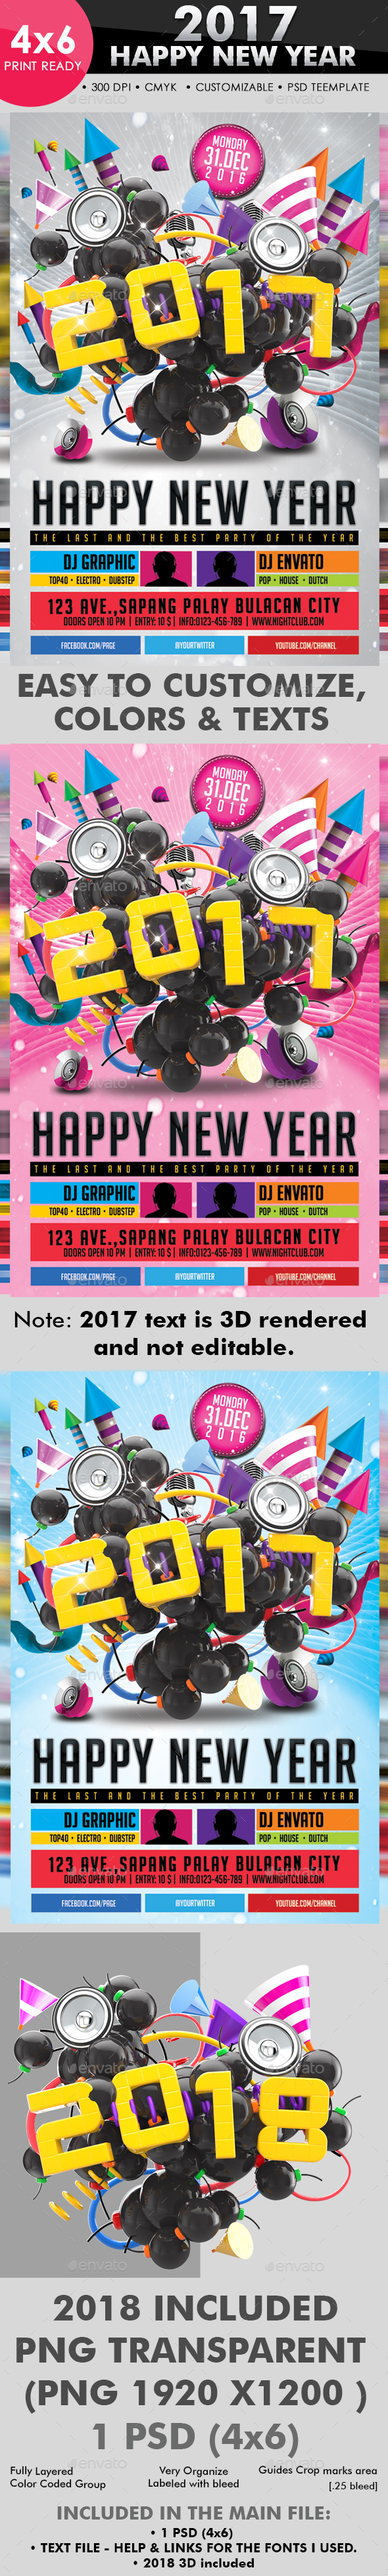 2017 Happy New Year Flyer Template - Clubs & Parties Events